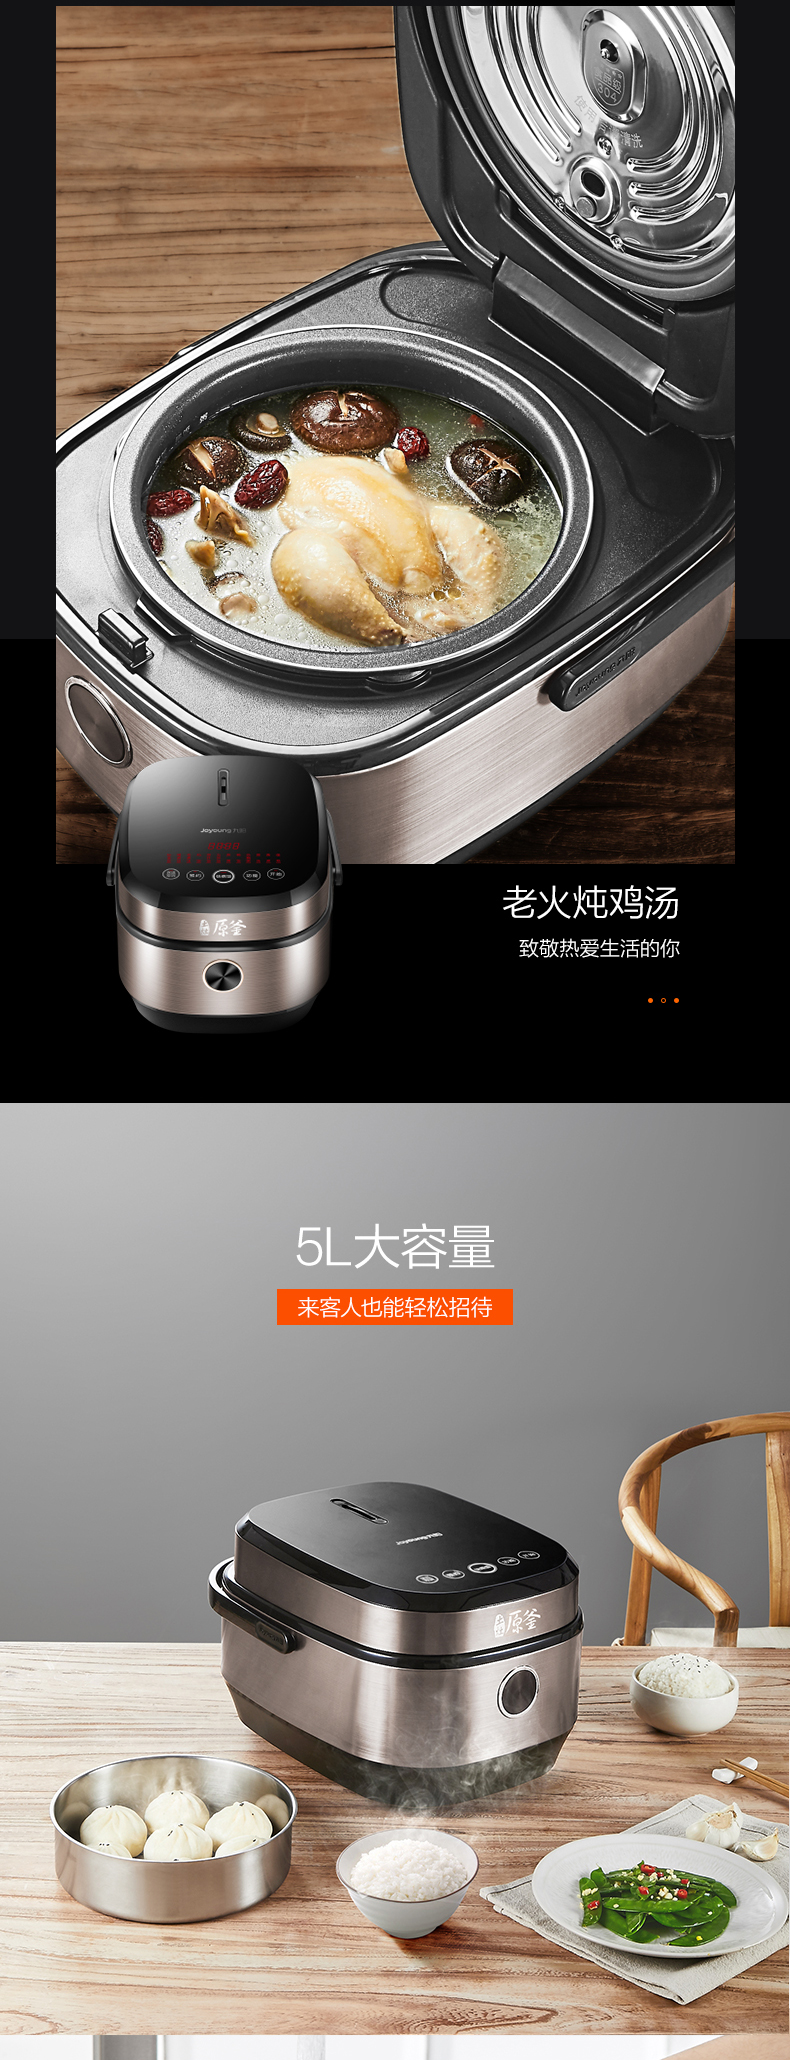 Rice Cooker 5L Home Smart 1 Large Capacity 3 Steamed Rice Cooking Rice 6 Authentic Rice Cooker 50FY808 10